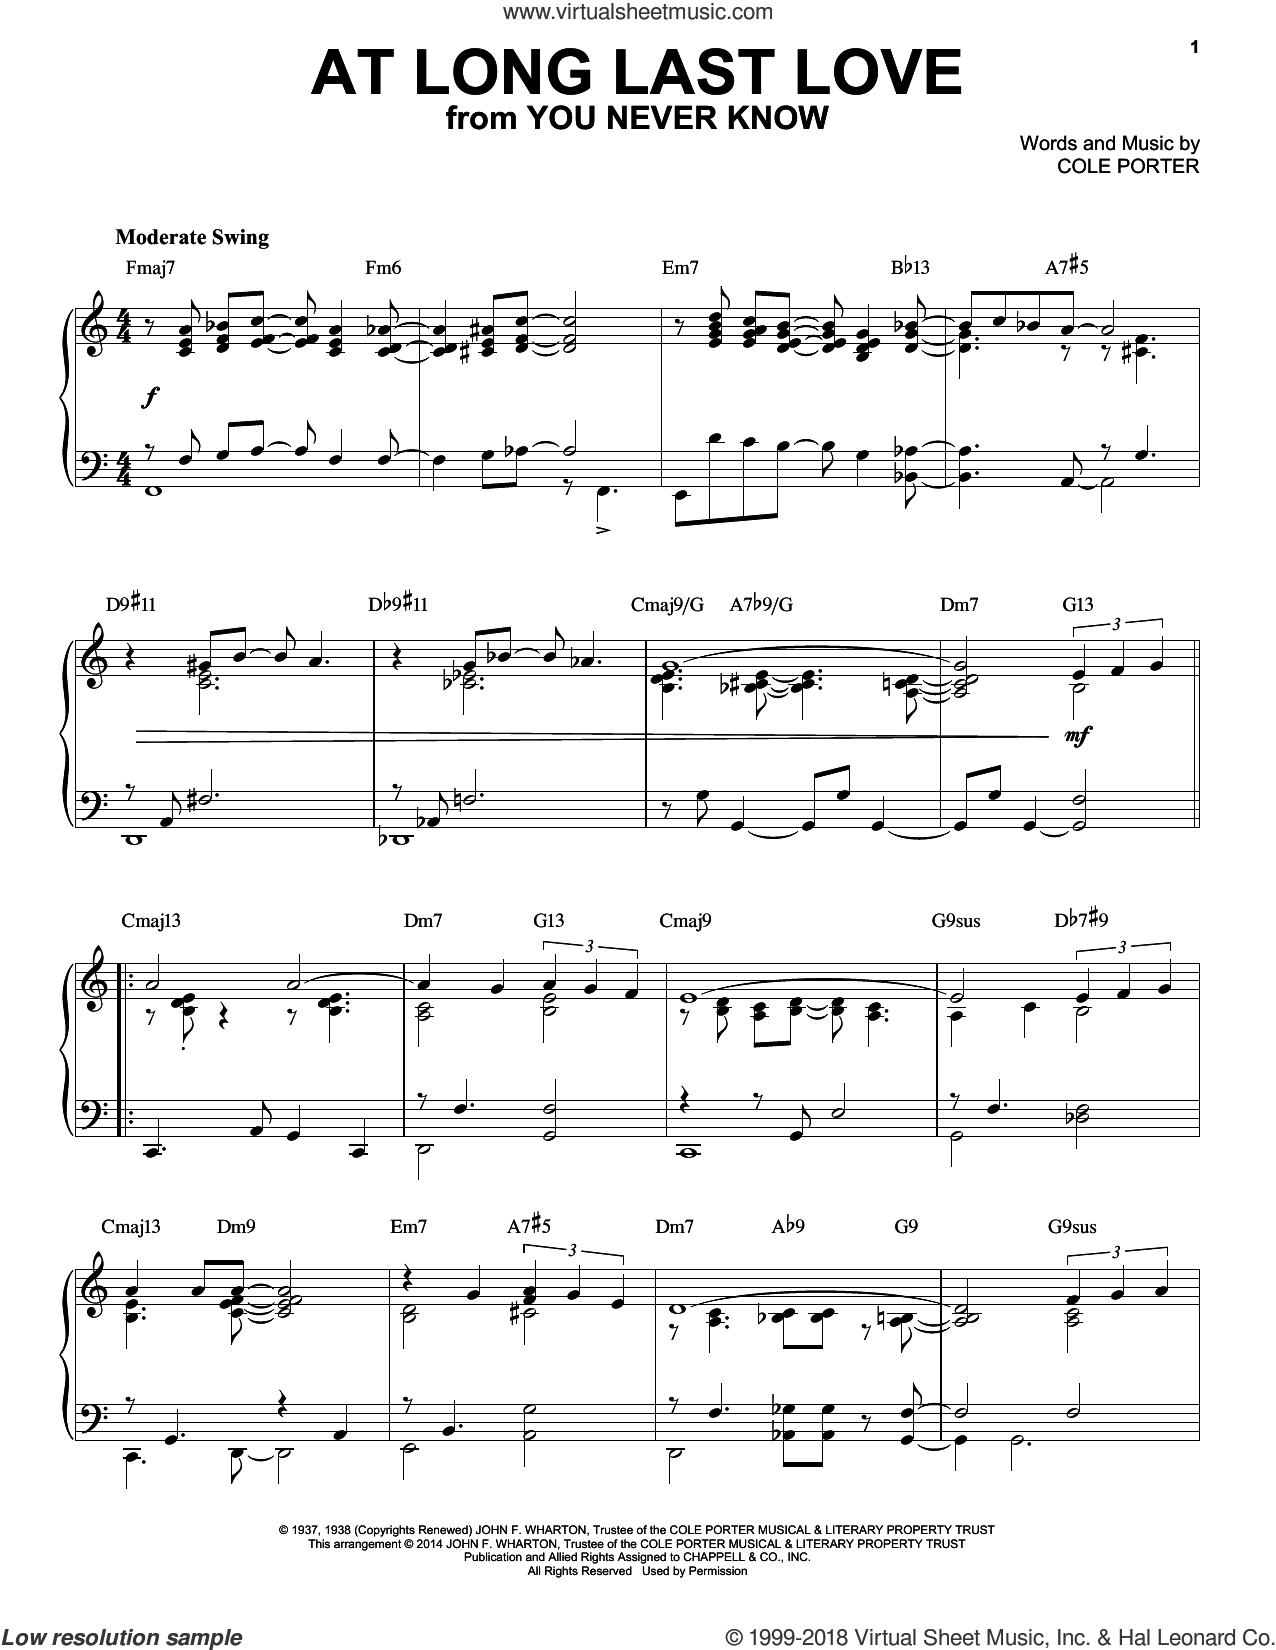 At Long Last Love sheet music for piano solo by Cole Porter and Frank Sinatra, intermediate skill level